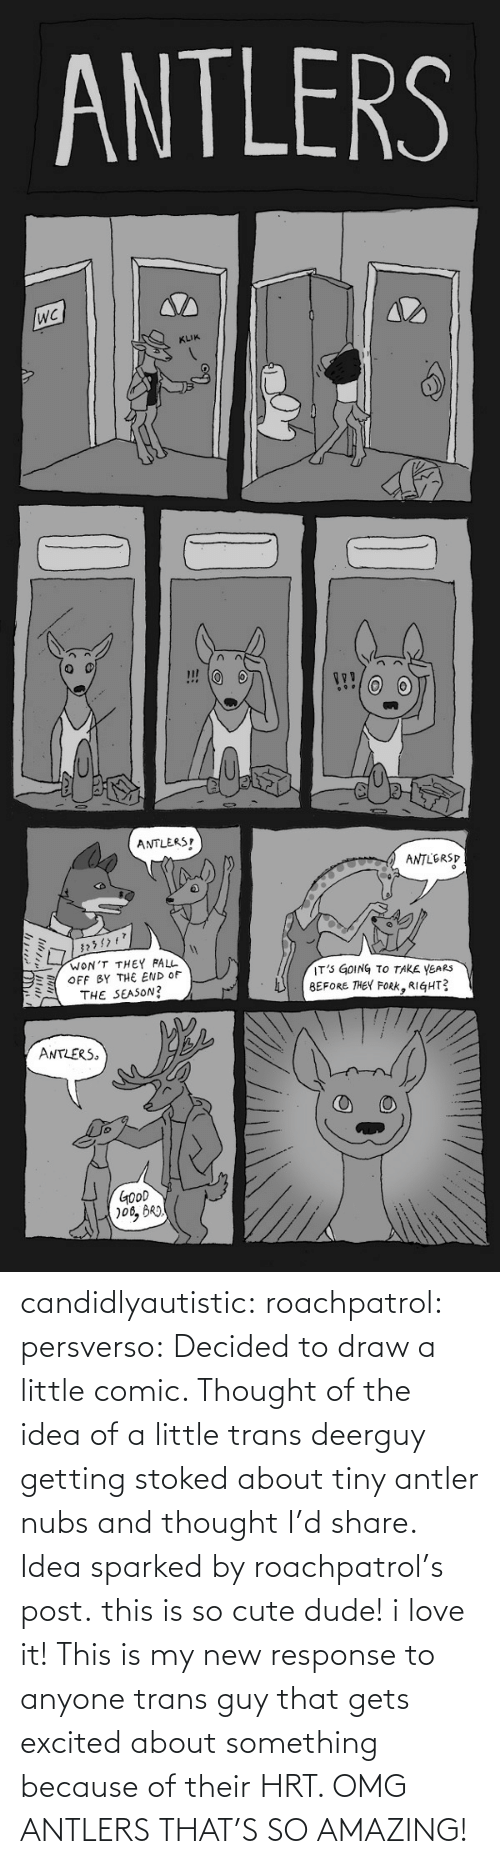 My New: ANTLERS  KLIK  ANTLERS  ANTLERSP  WON'T THEY FALL  OFF BY THE END OF  THE SEASON?  IT' GOING TO TAKE YEARS  BEFORE THEY FoRK, RIGHT?  ミ  ANTLERS  GOoD candidlyautistic: roachpatrol:  persverso:  Decided to draw a little comic. Thought of the idea of a little trans deerguy getting stoked about tiny antler nubs and thought I'd share. Idea sparked by roachpatrol's post.  this is so cute dude! i love it!  This is my new response to anyone trans guy that gets excited about something because of their HRT. OMG ANTLERS THAT'S SO AMAZING!